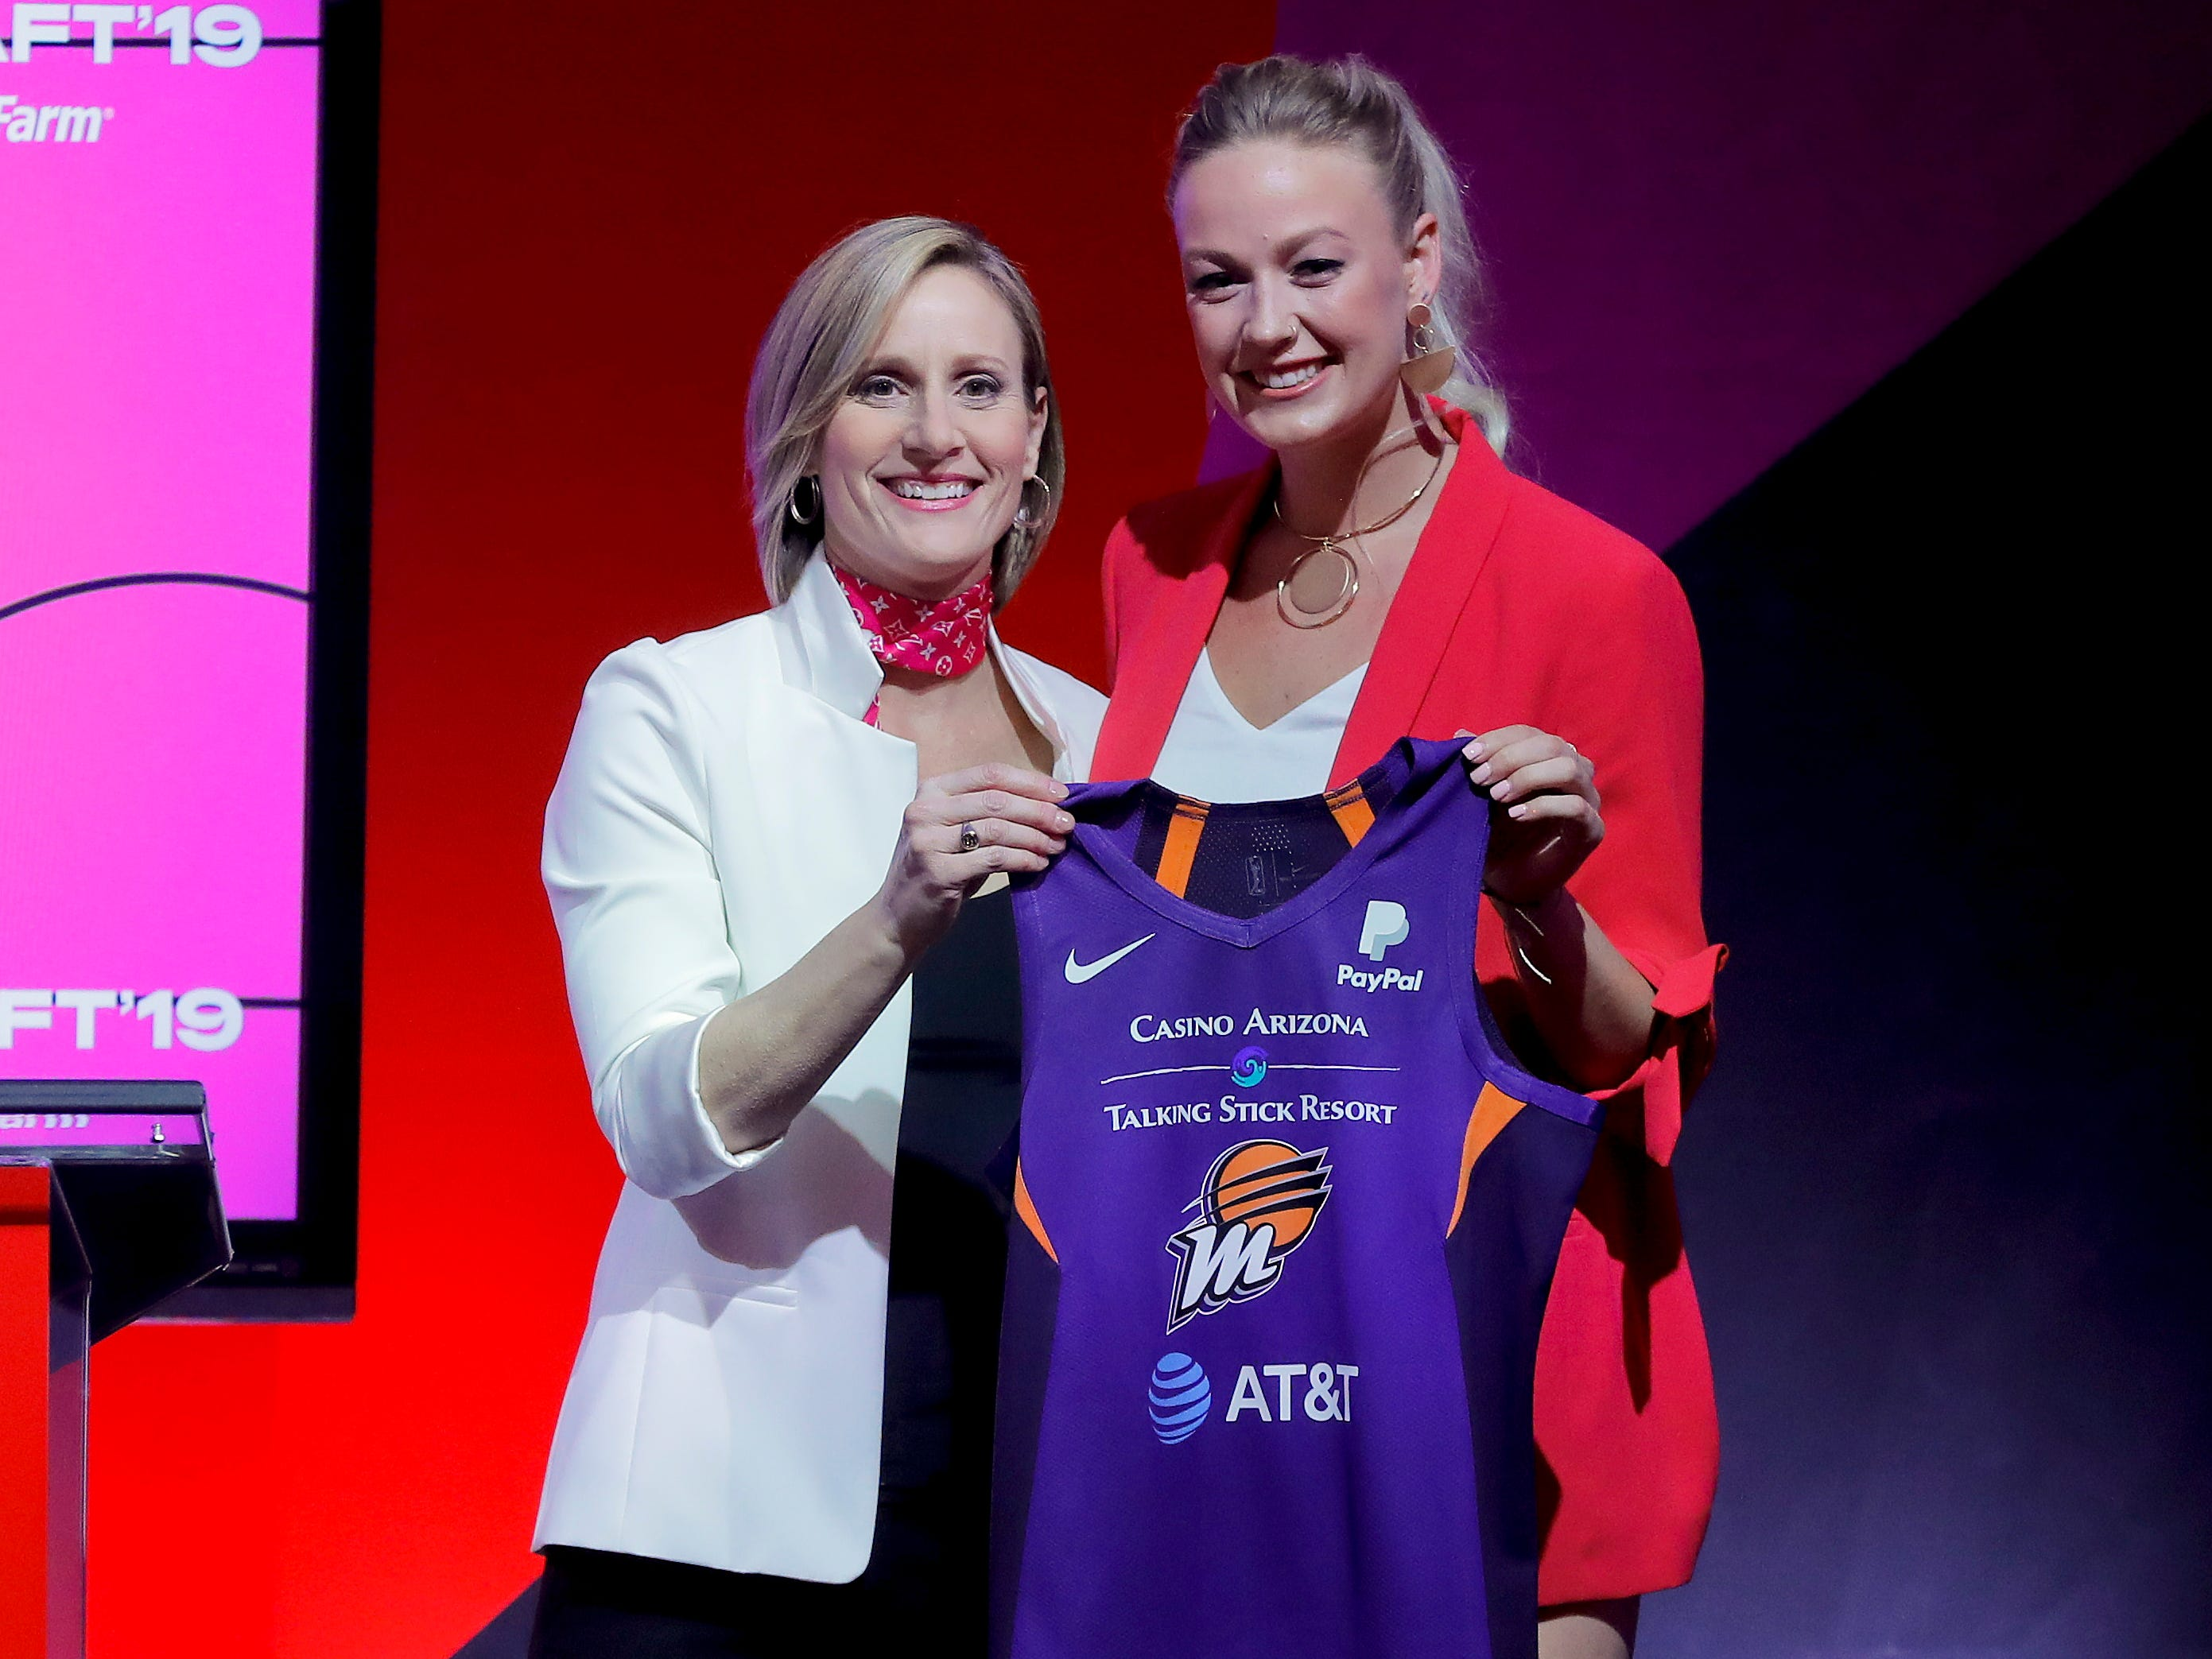 Missouri's Sophie Cunningham (right) poses for a photo with WNBA COO Christy Hedgpeth after being selected by the Phoenix Mercury in the second round of the WNBA draft.